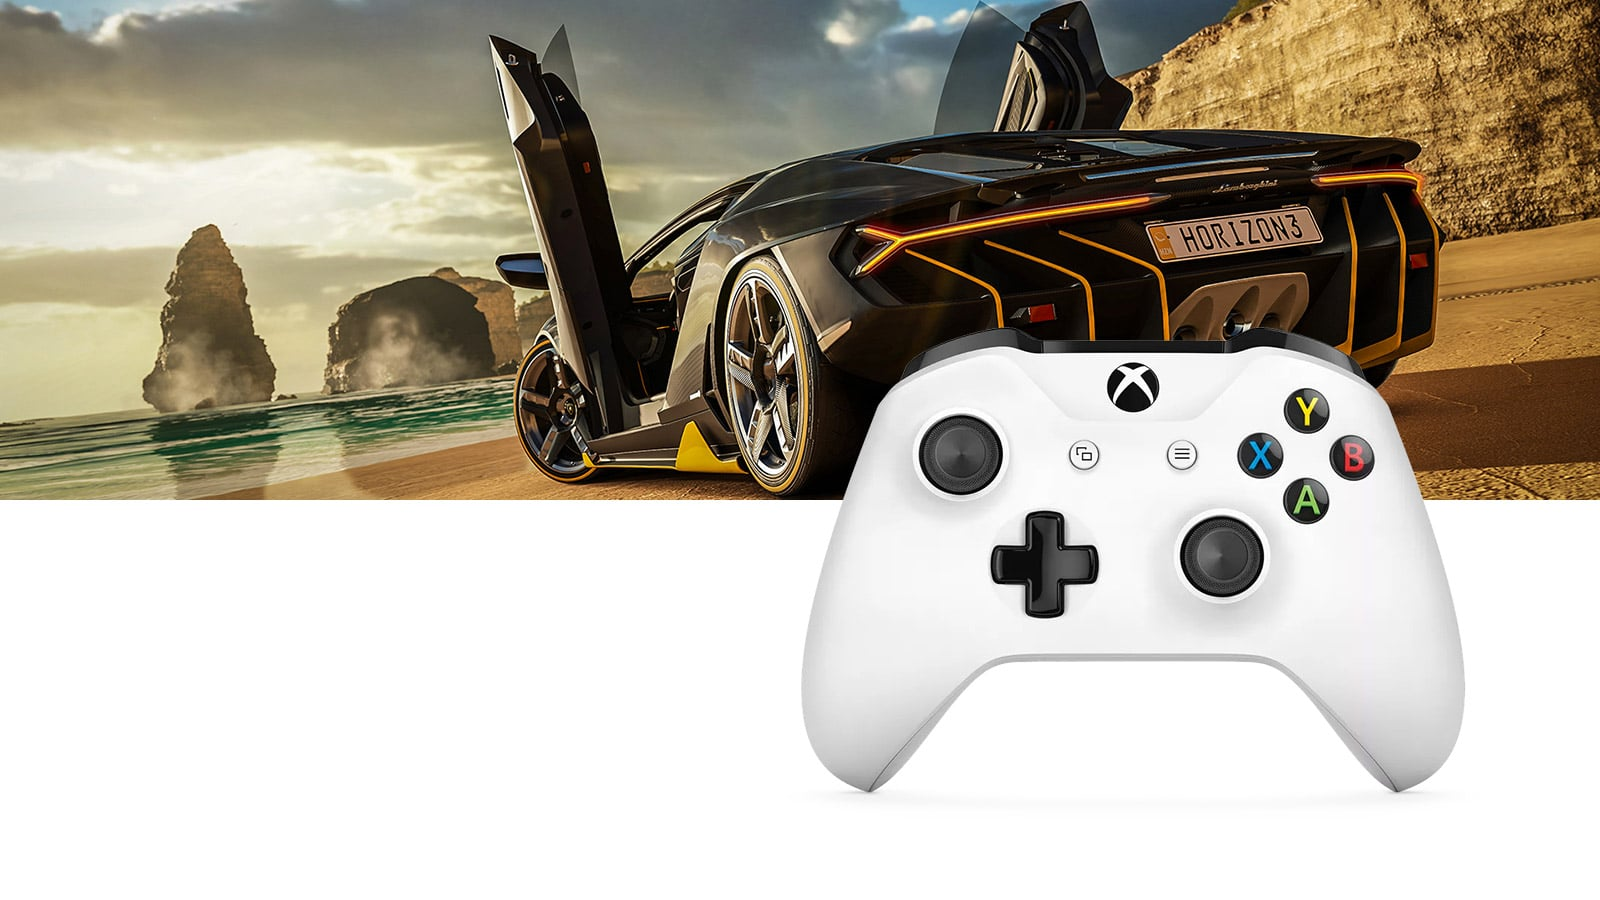 Forza on Xbox and white controller